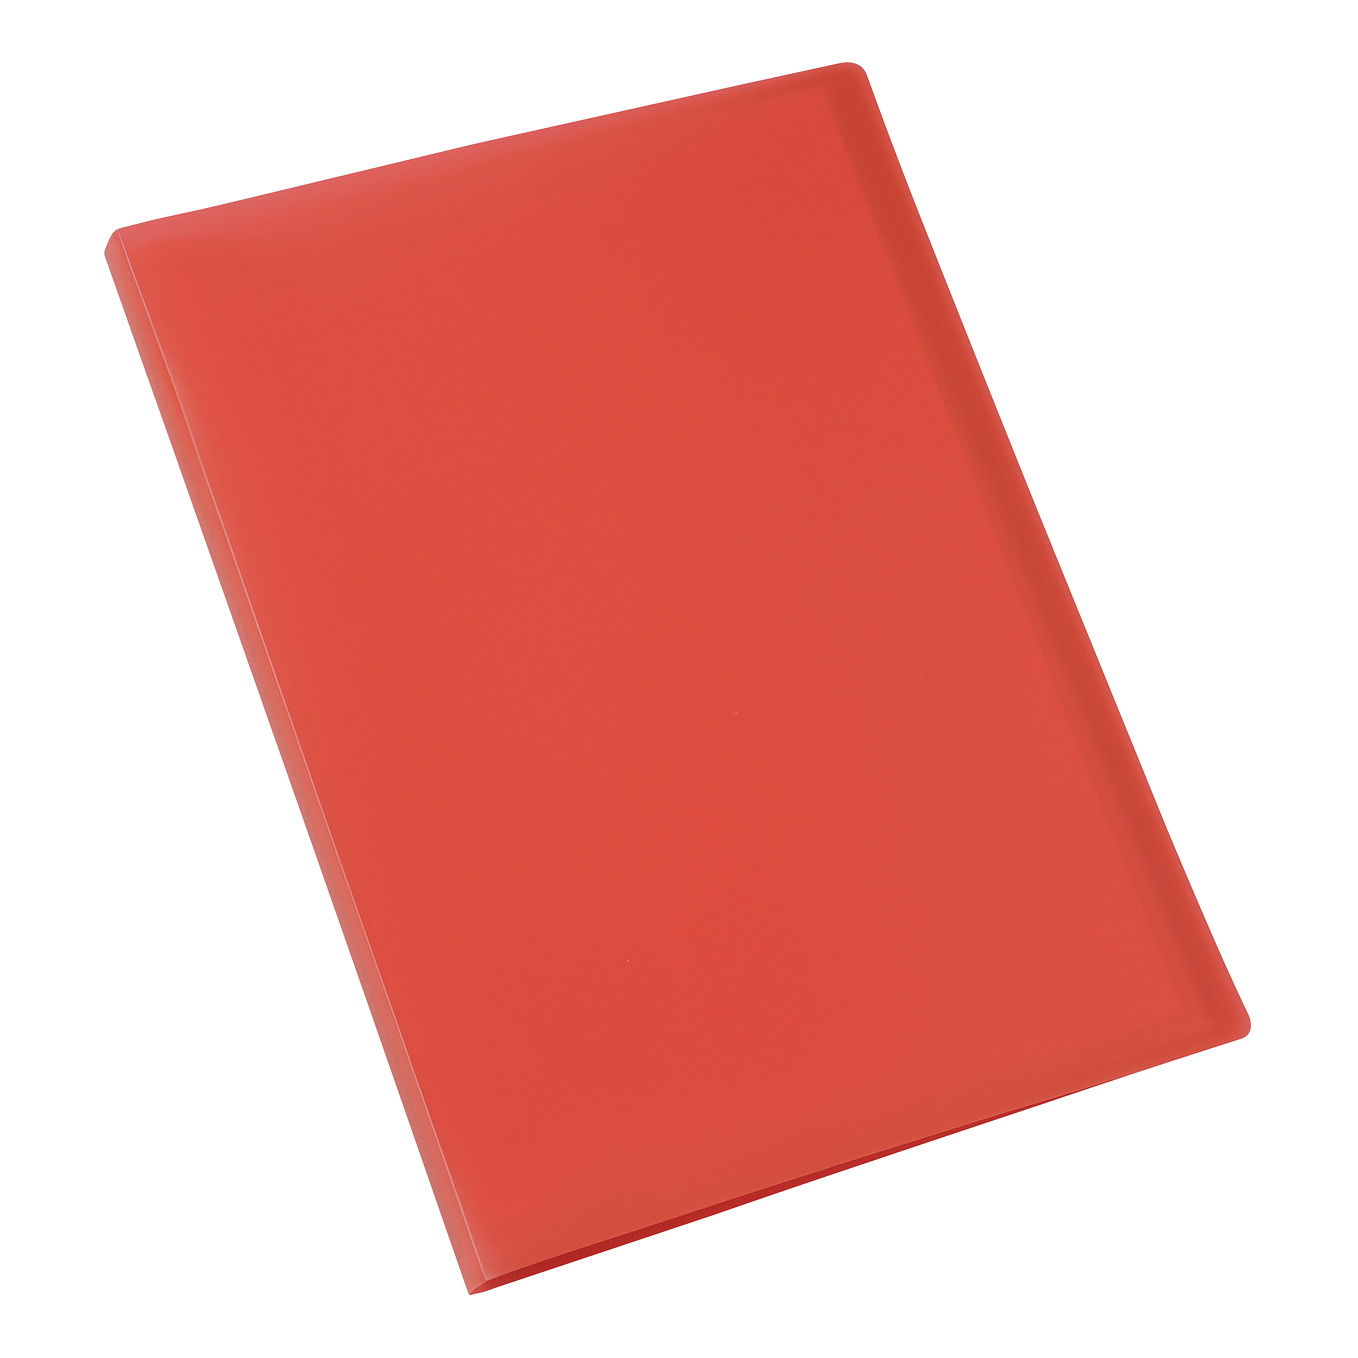 Display Books 5 Star Office Display Book Soft Cover Lightweight Polypropylene 20 Pockets A4 Red